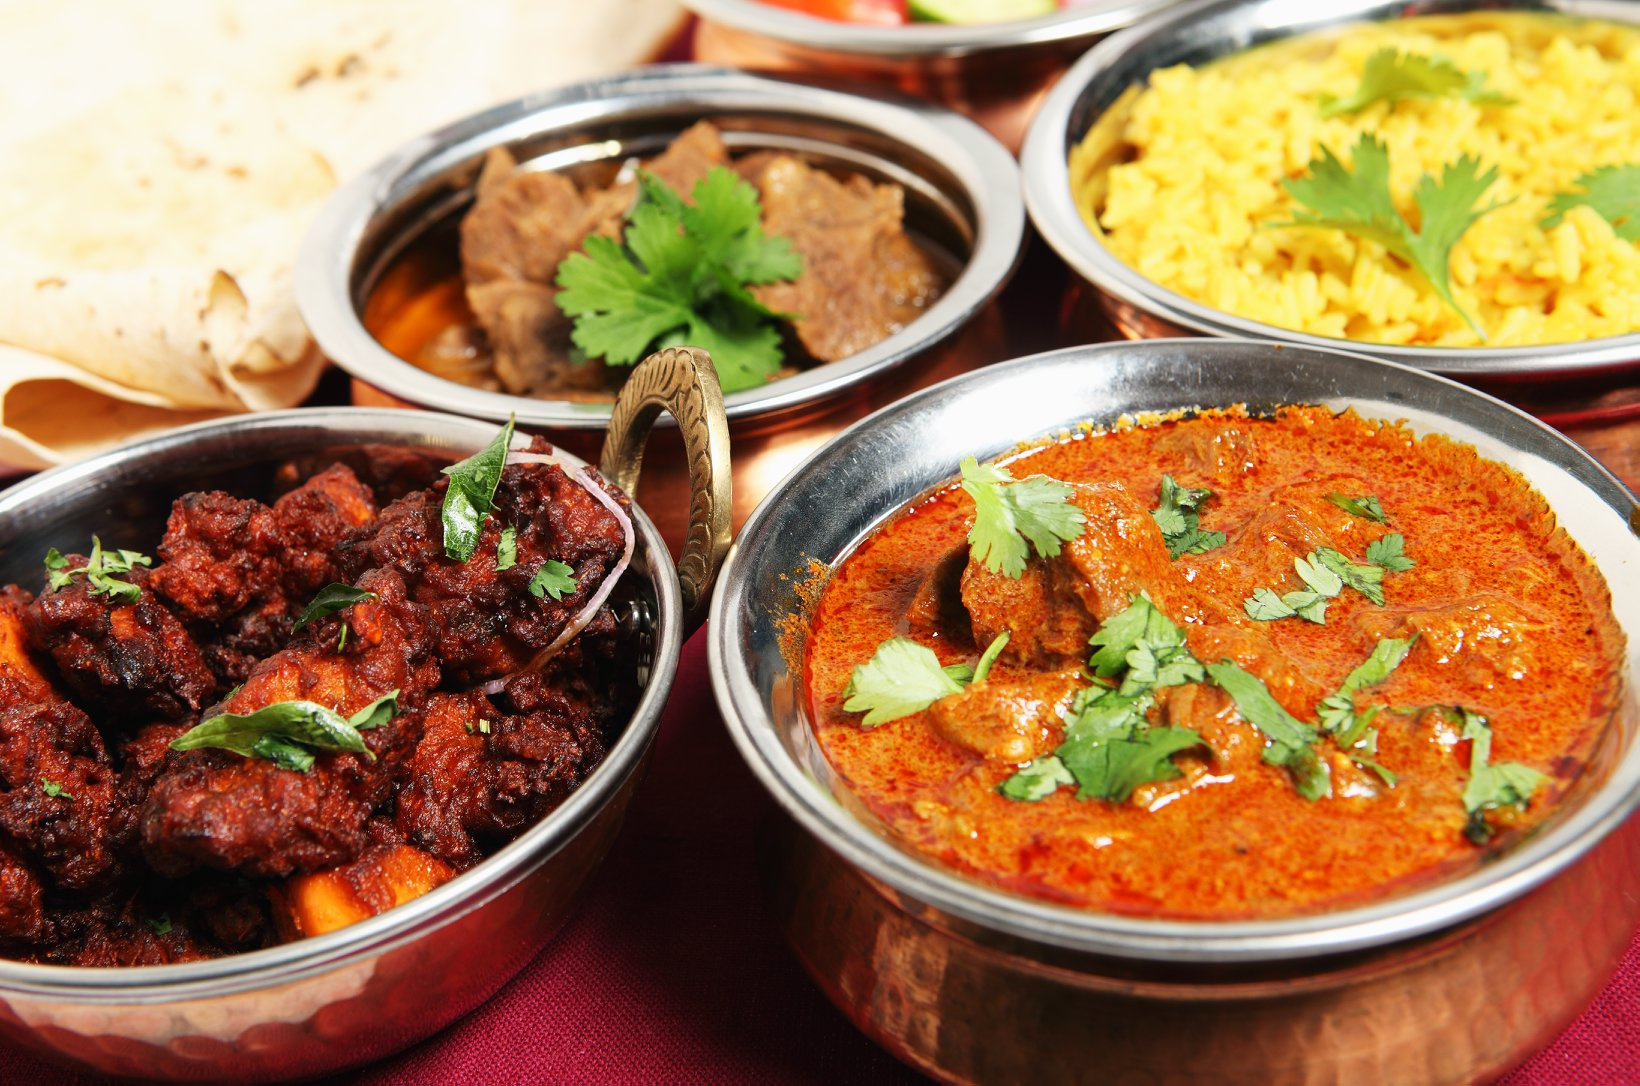 Profitable Indian Restaurant Situated in Redland City